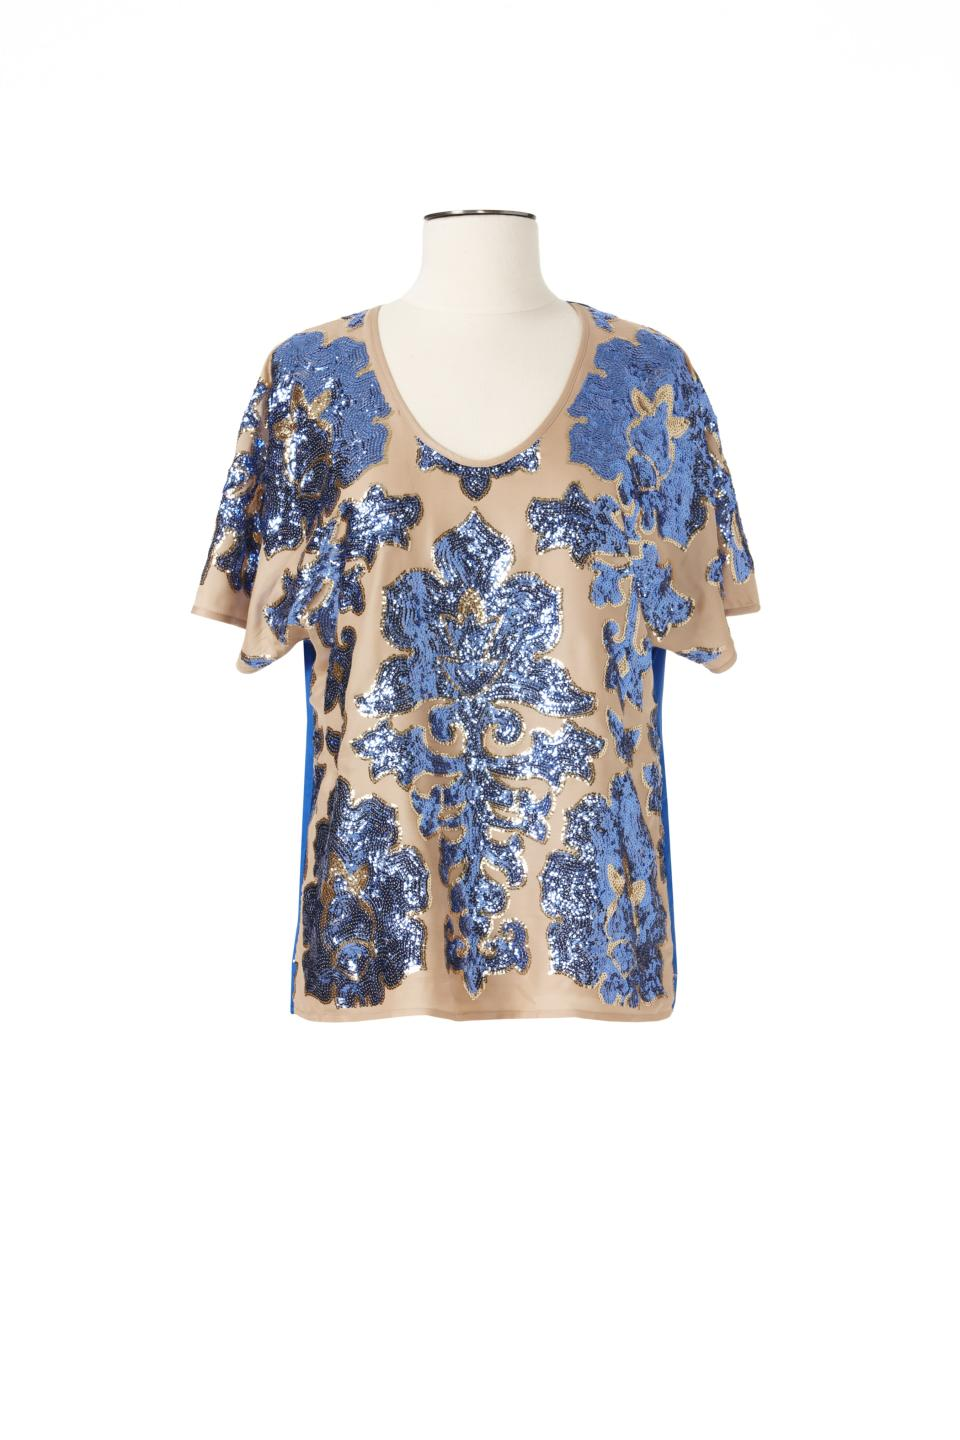 <b>Tracy Reese for Target + Neiman Marcus Blouse</b><br><br> Price: $79.99<br><br> Sizes: XS-XXL<br><br> Tracy Reese made a stylish blouse with sequins on the front and silk on the back. <br><br>